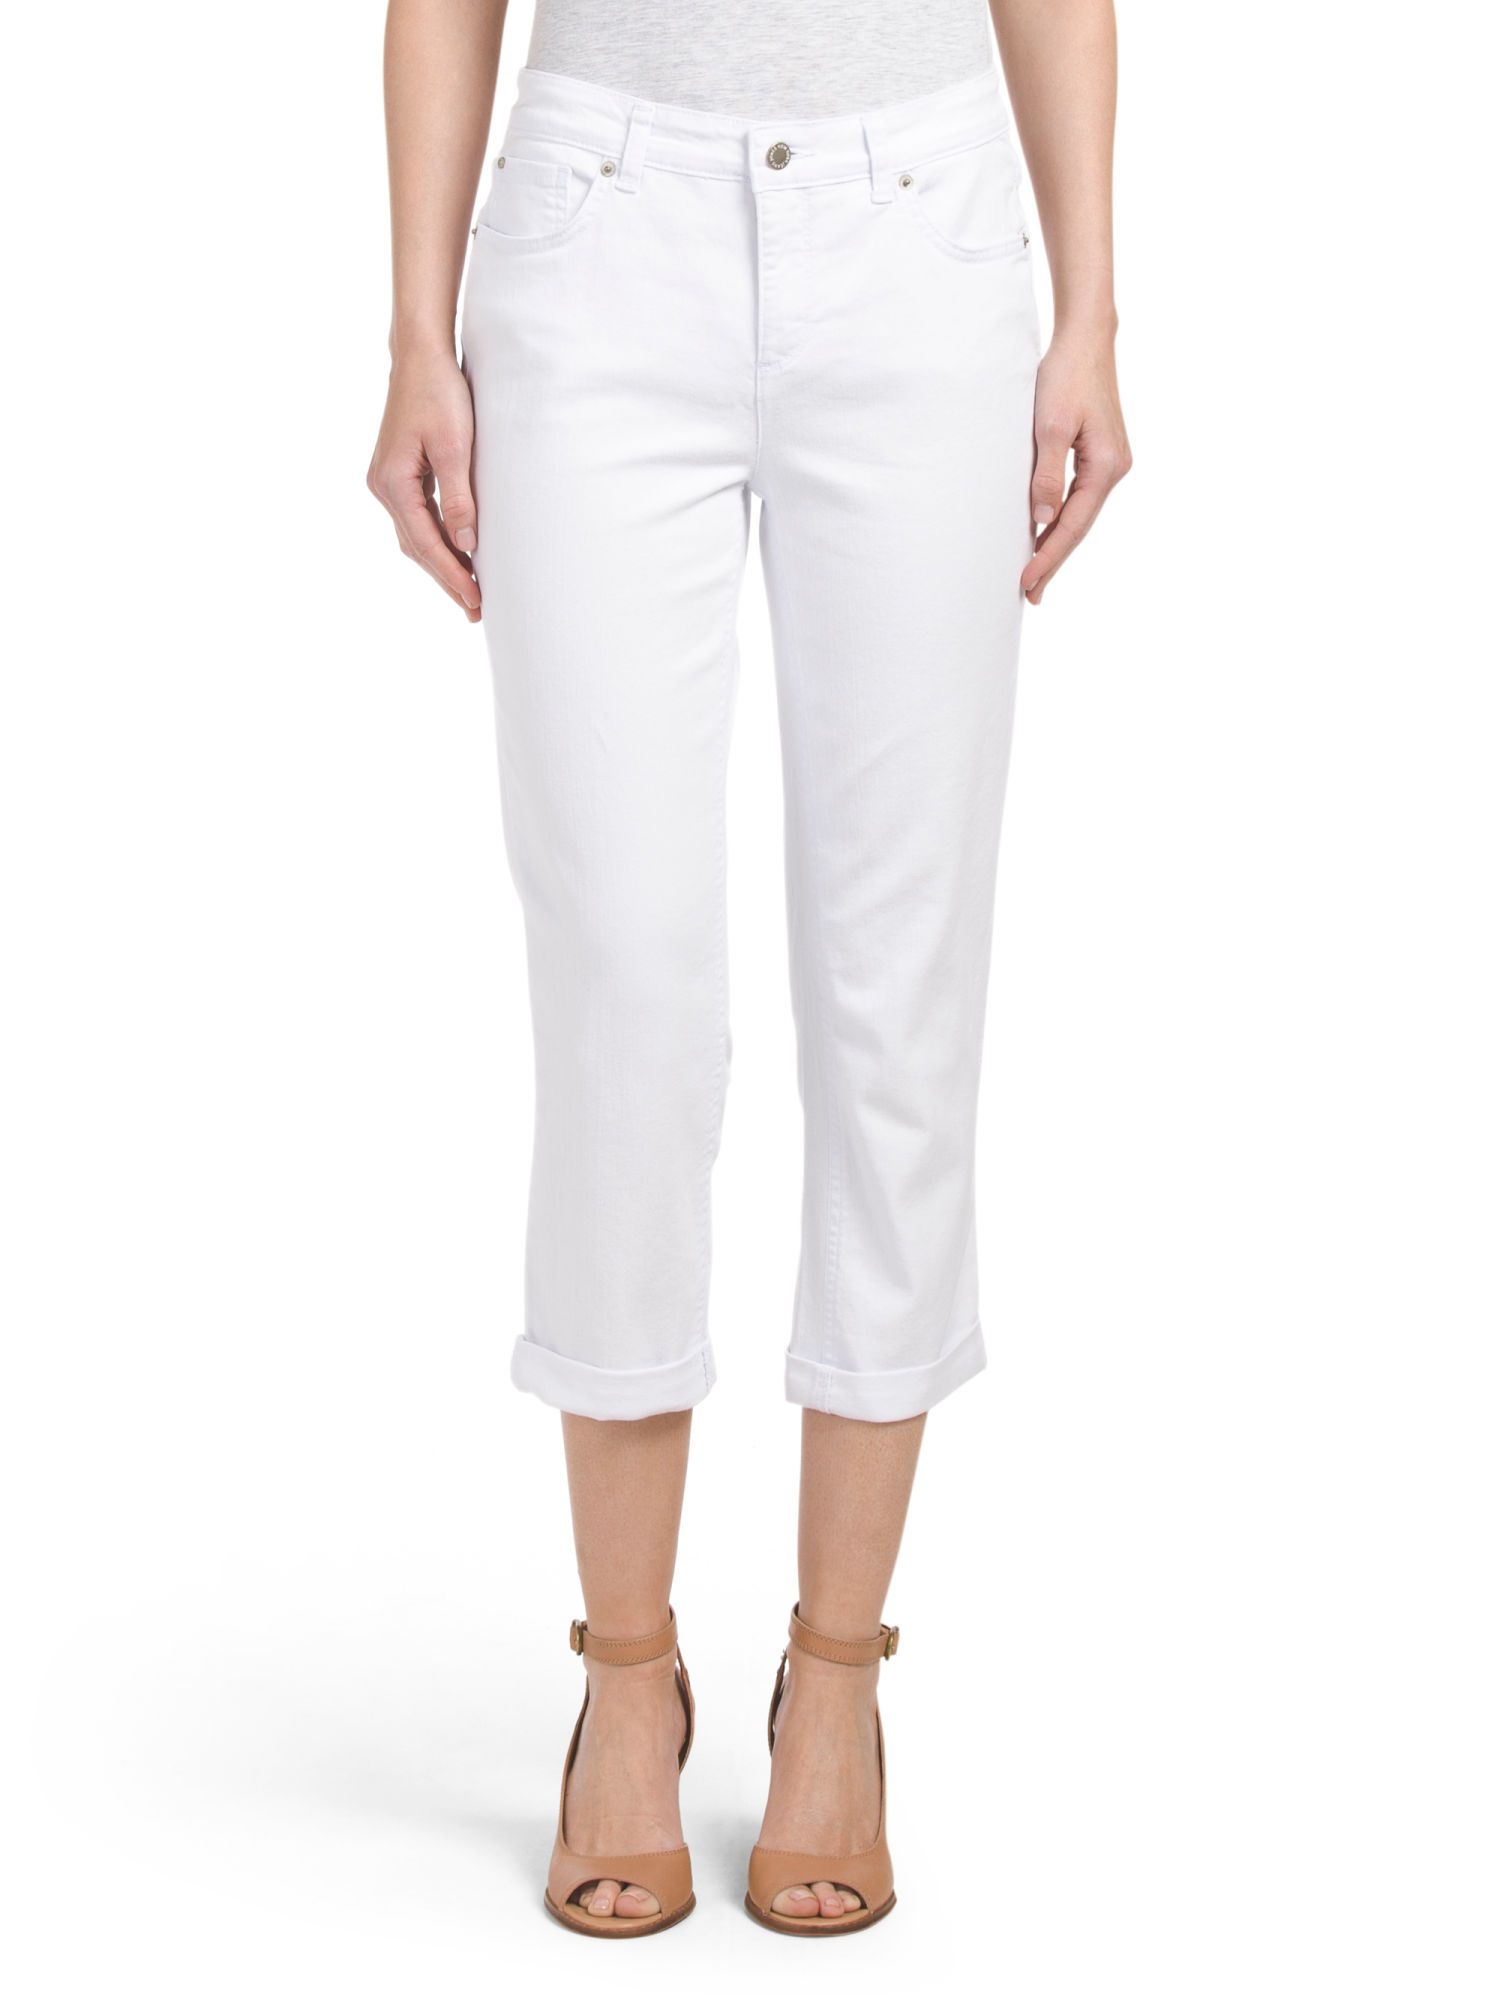 ea4f6bbc13610 Own it  Jones New York Lexington Cuffed Capri in White